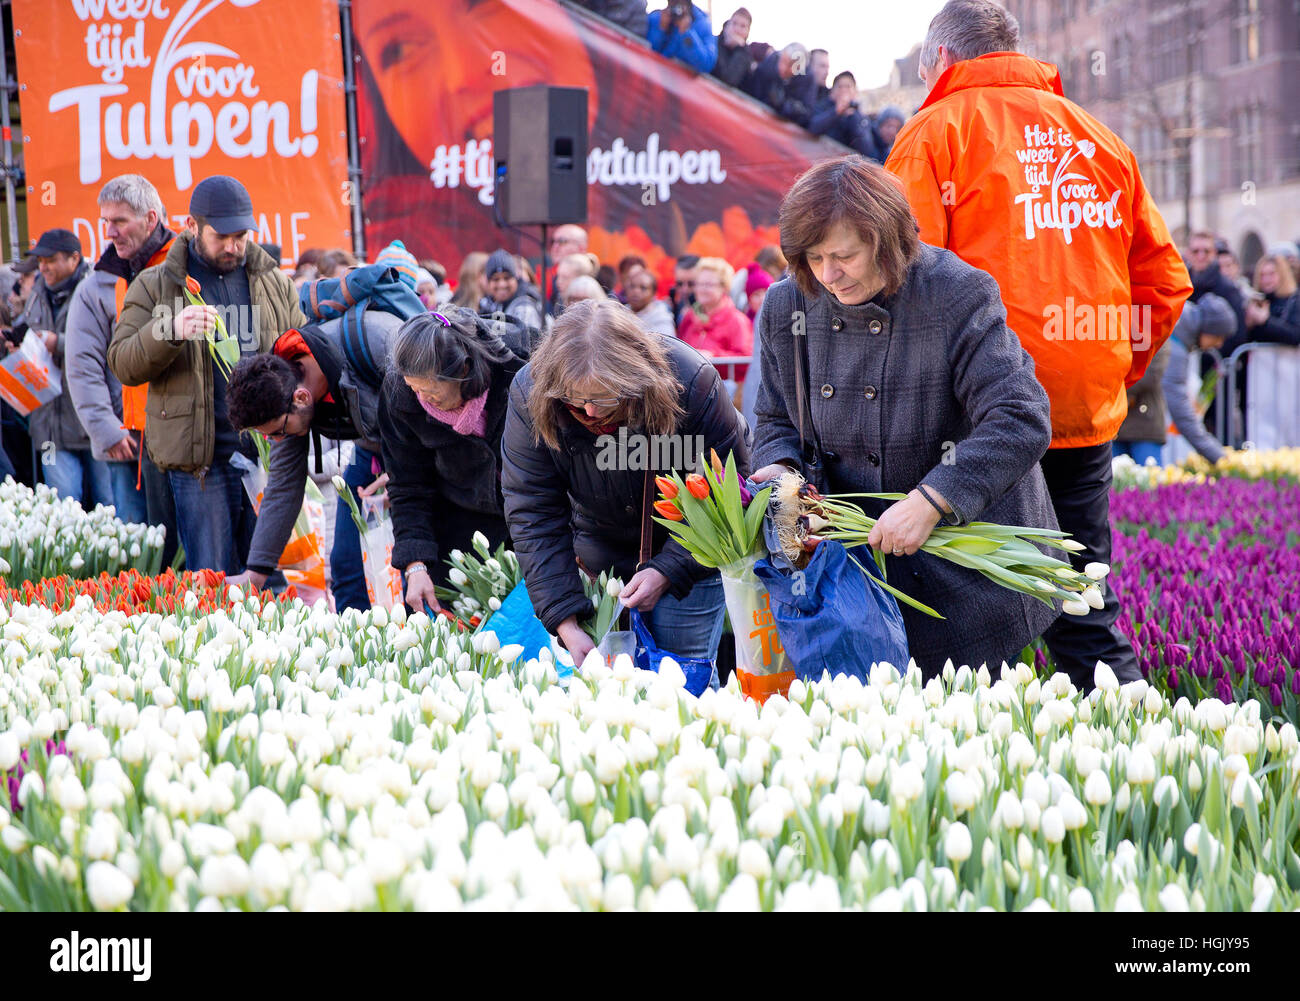 Amsterdam. 21st Jan, 2017. On the Dam tulips are picked during the National Tulip Day, on January 21, 2017, in Amsterdam. Stock Photo